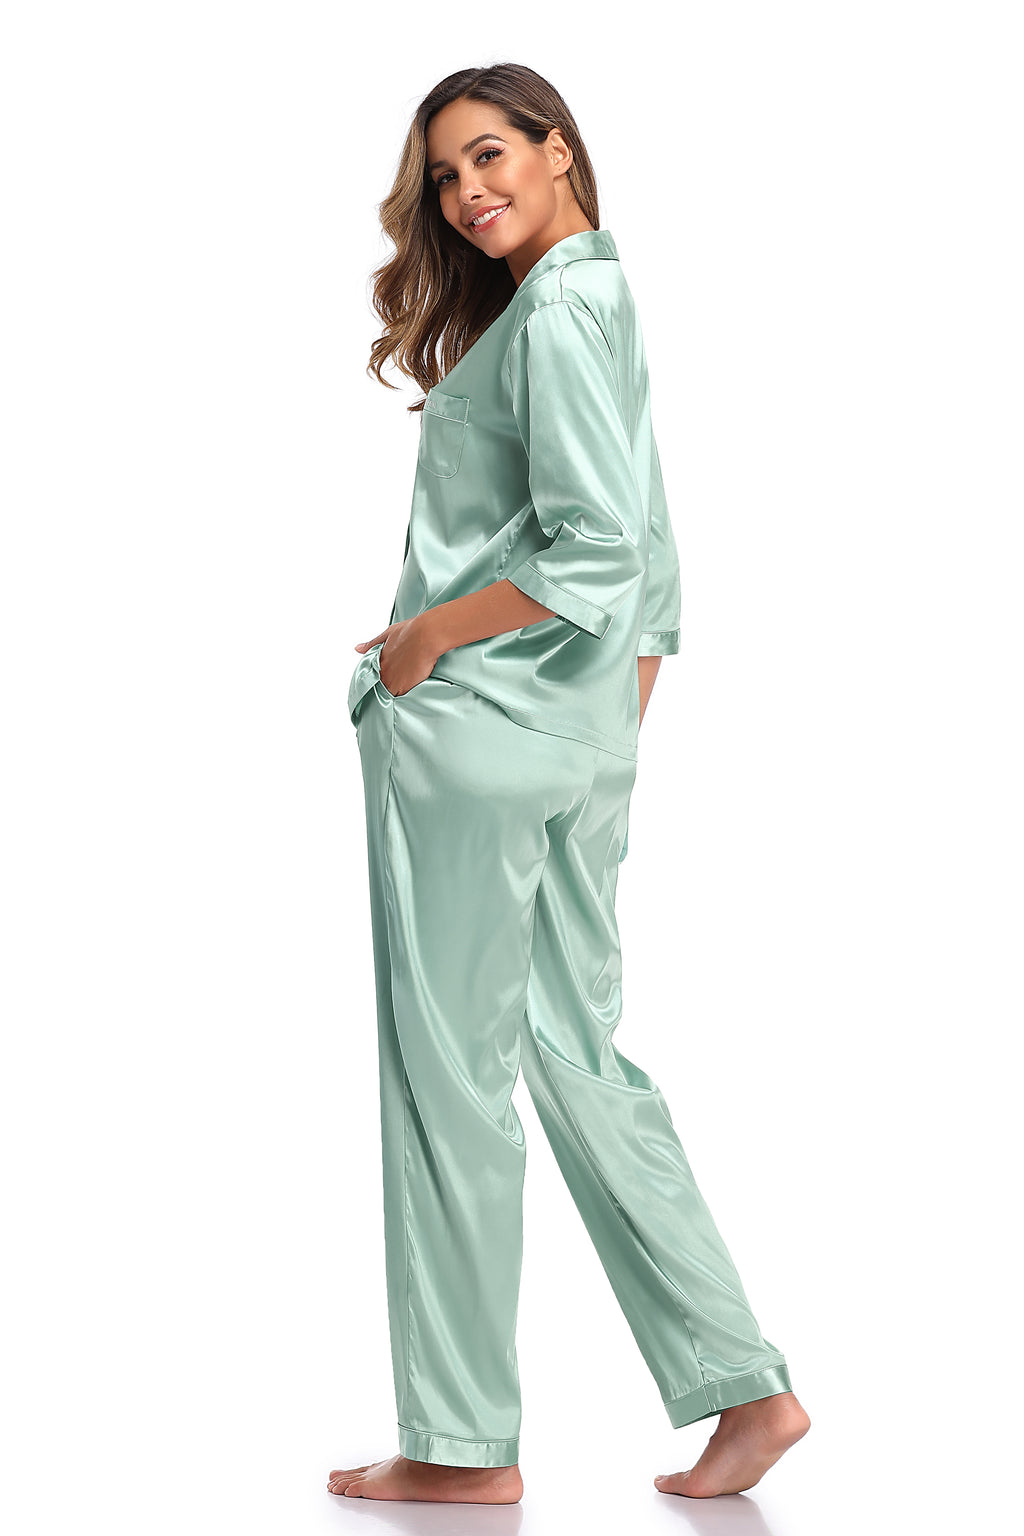 Womens Silk Satin Pajamas Set - Shekini Swimwear